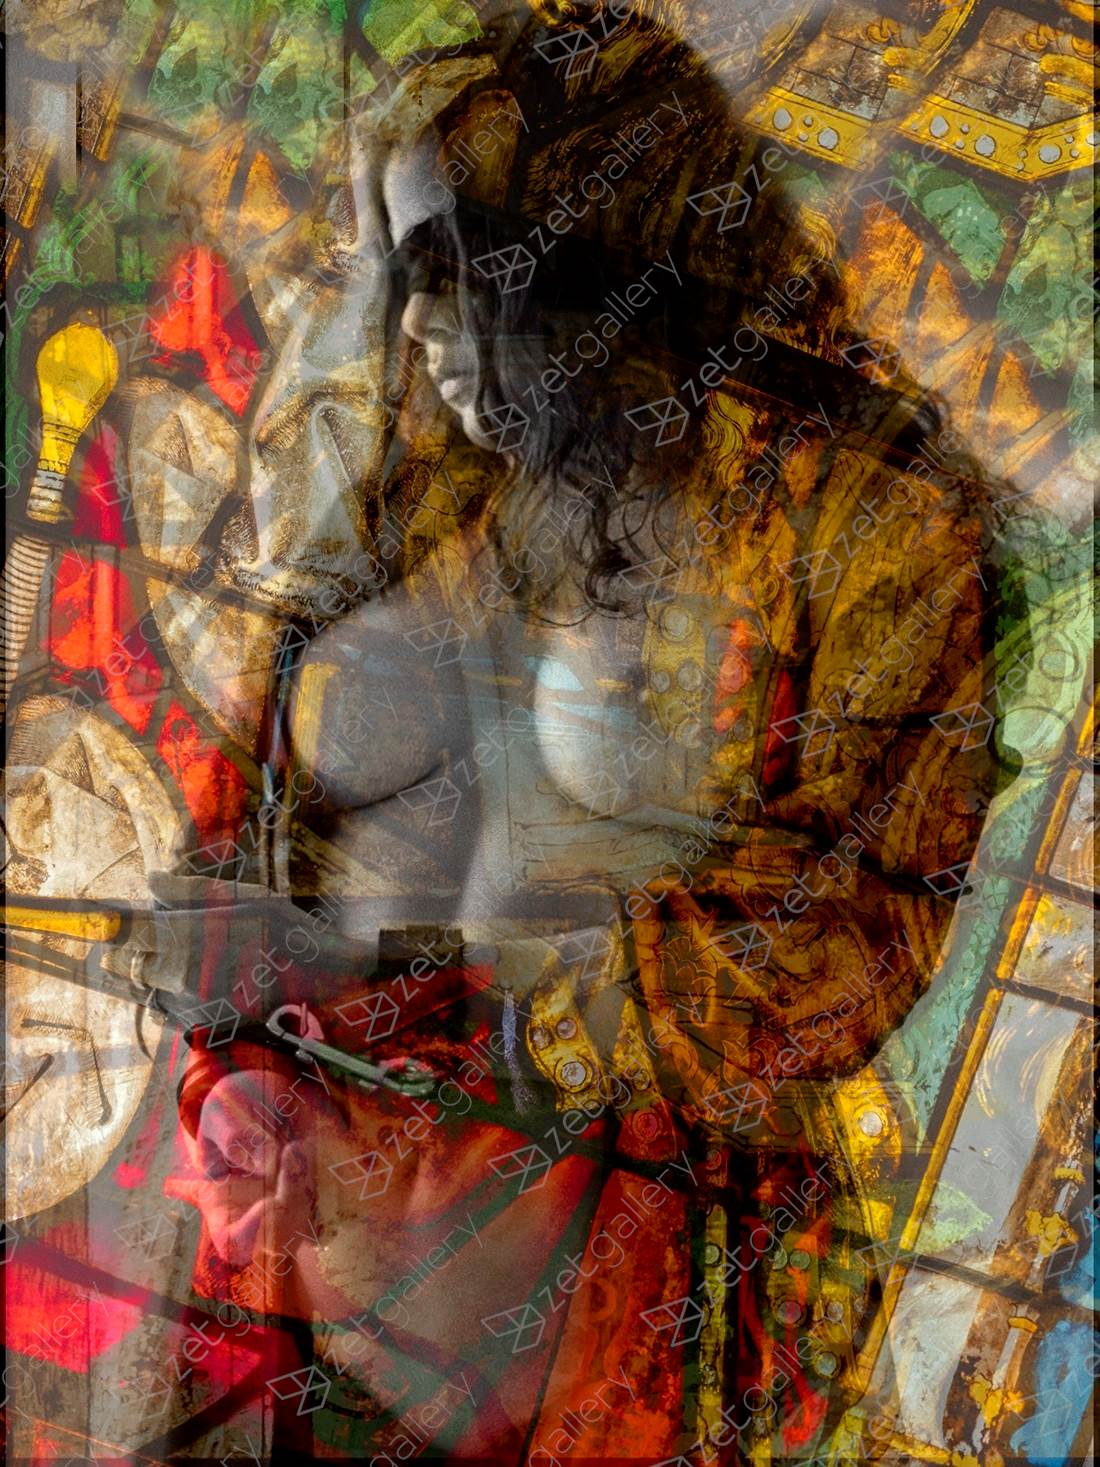 Impressions On A Stained Glass Window, original Religion Digital Photography by Richard Nicole